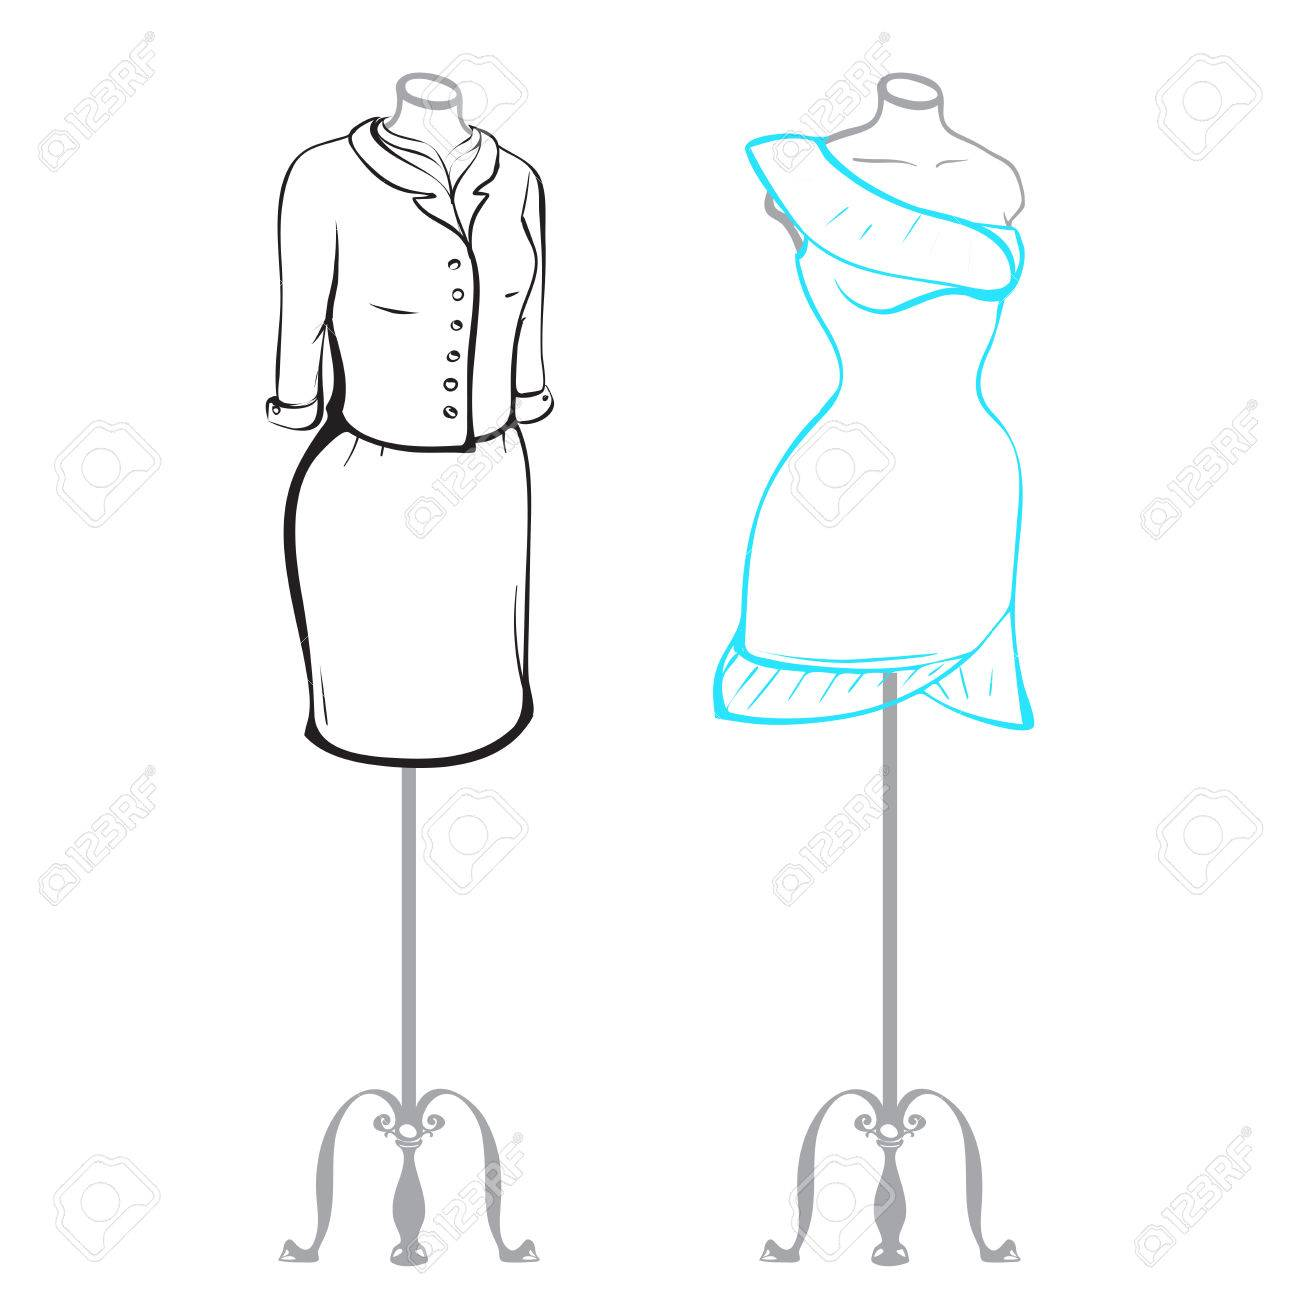 Business Suit And Wearing Women S Clothes On Mannequins Made